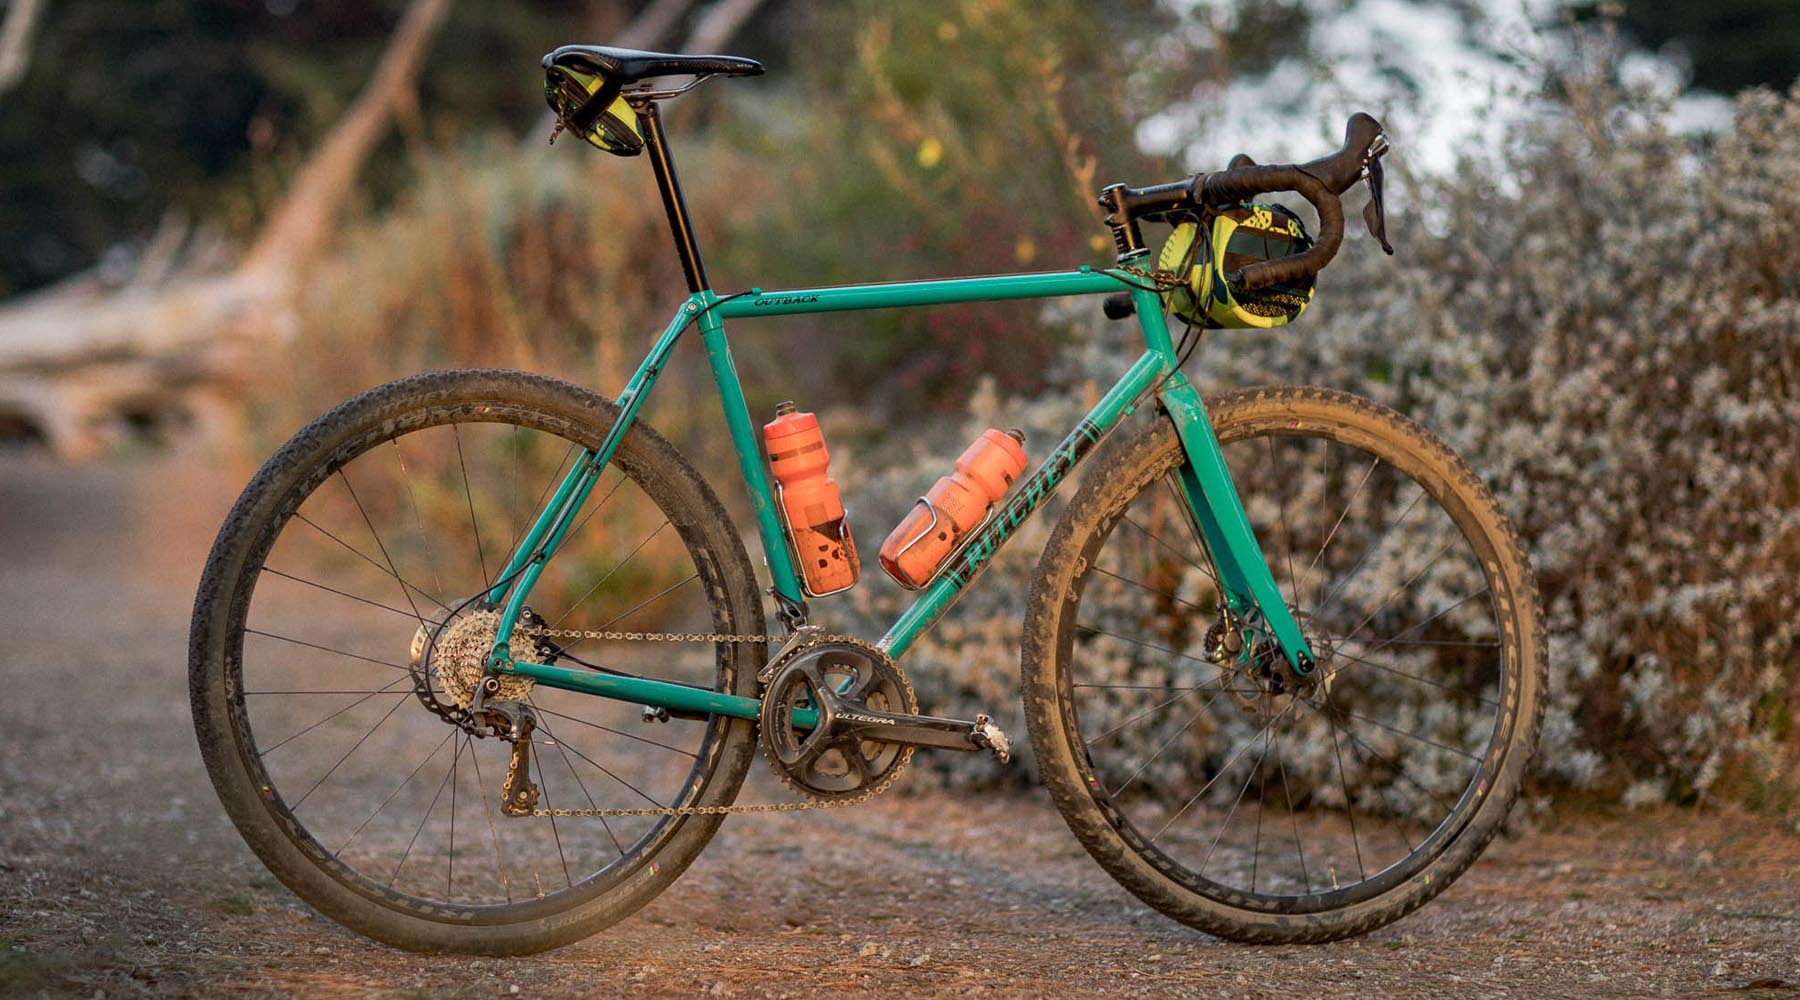 Ritchey Outback / Grinduro